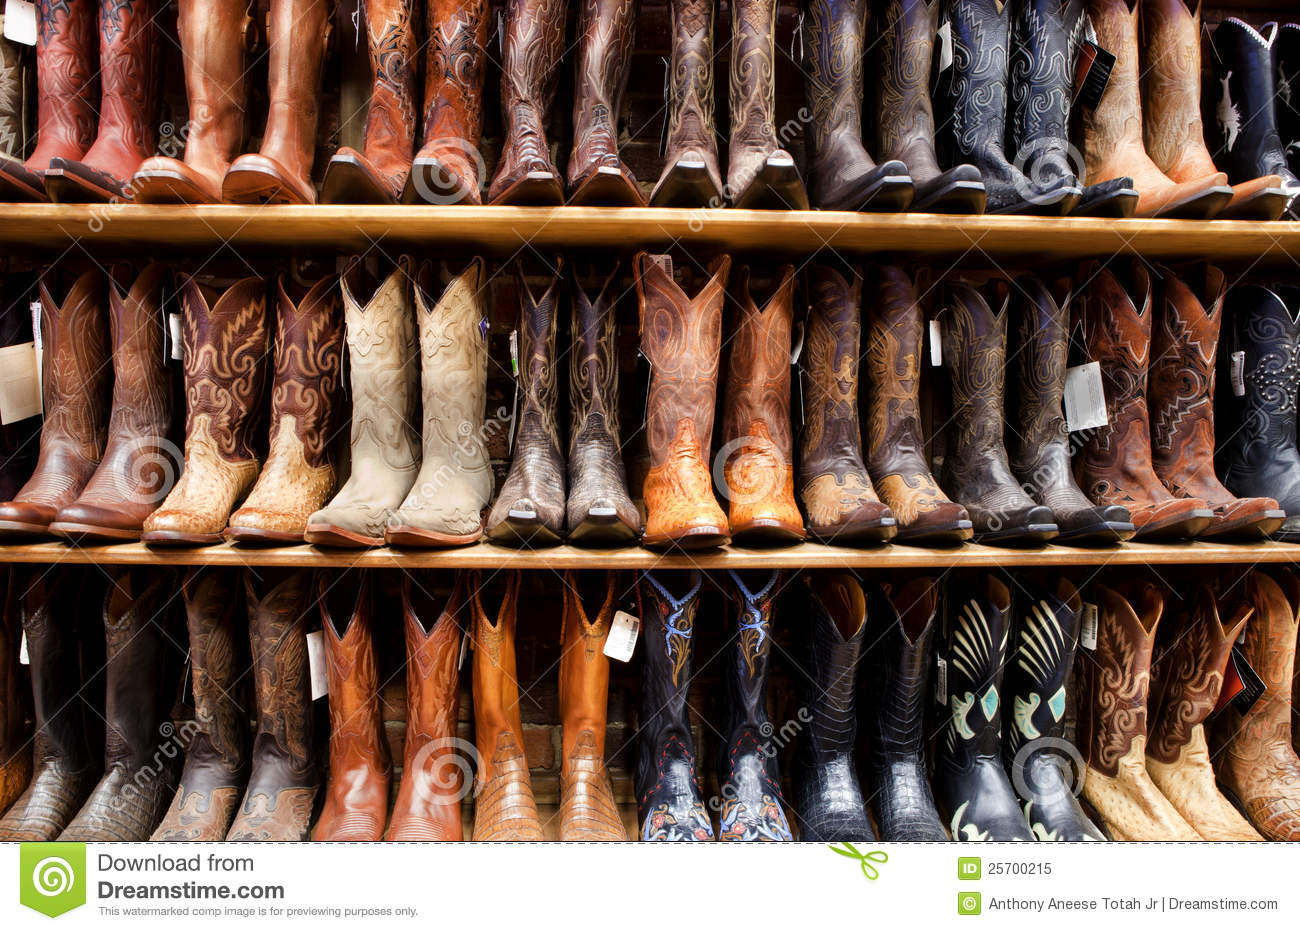 Wall Of Cowboy Boots Royalty Free Stock Photo - Image: 25700215